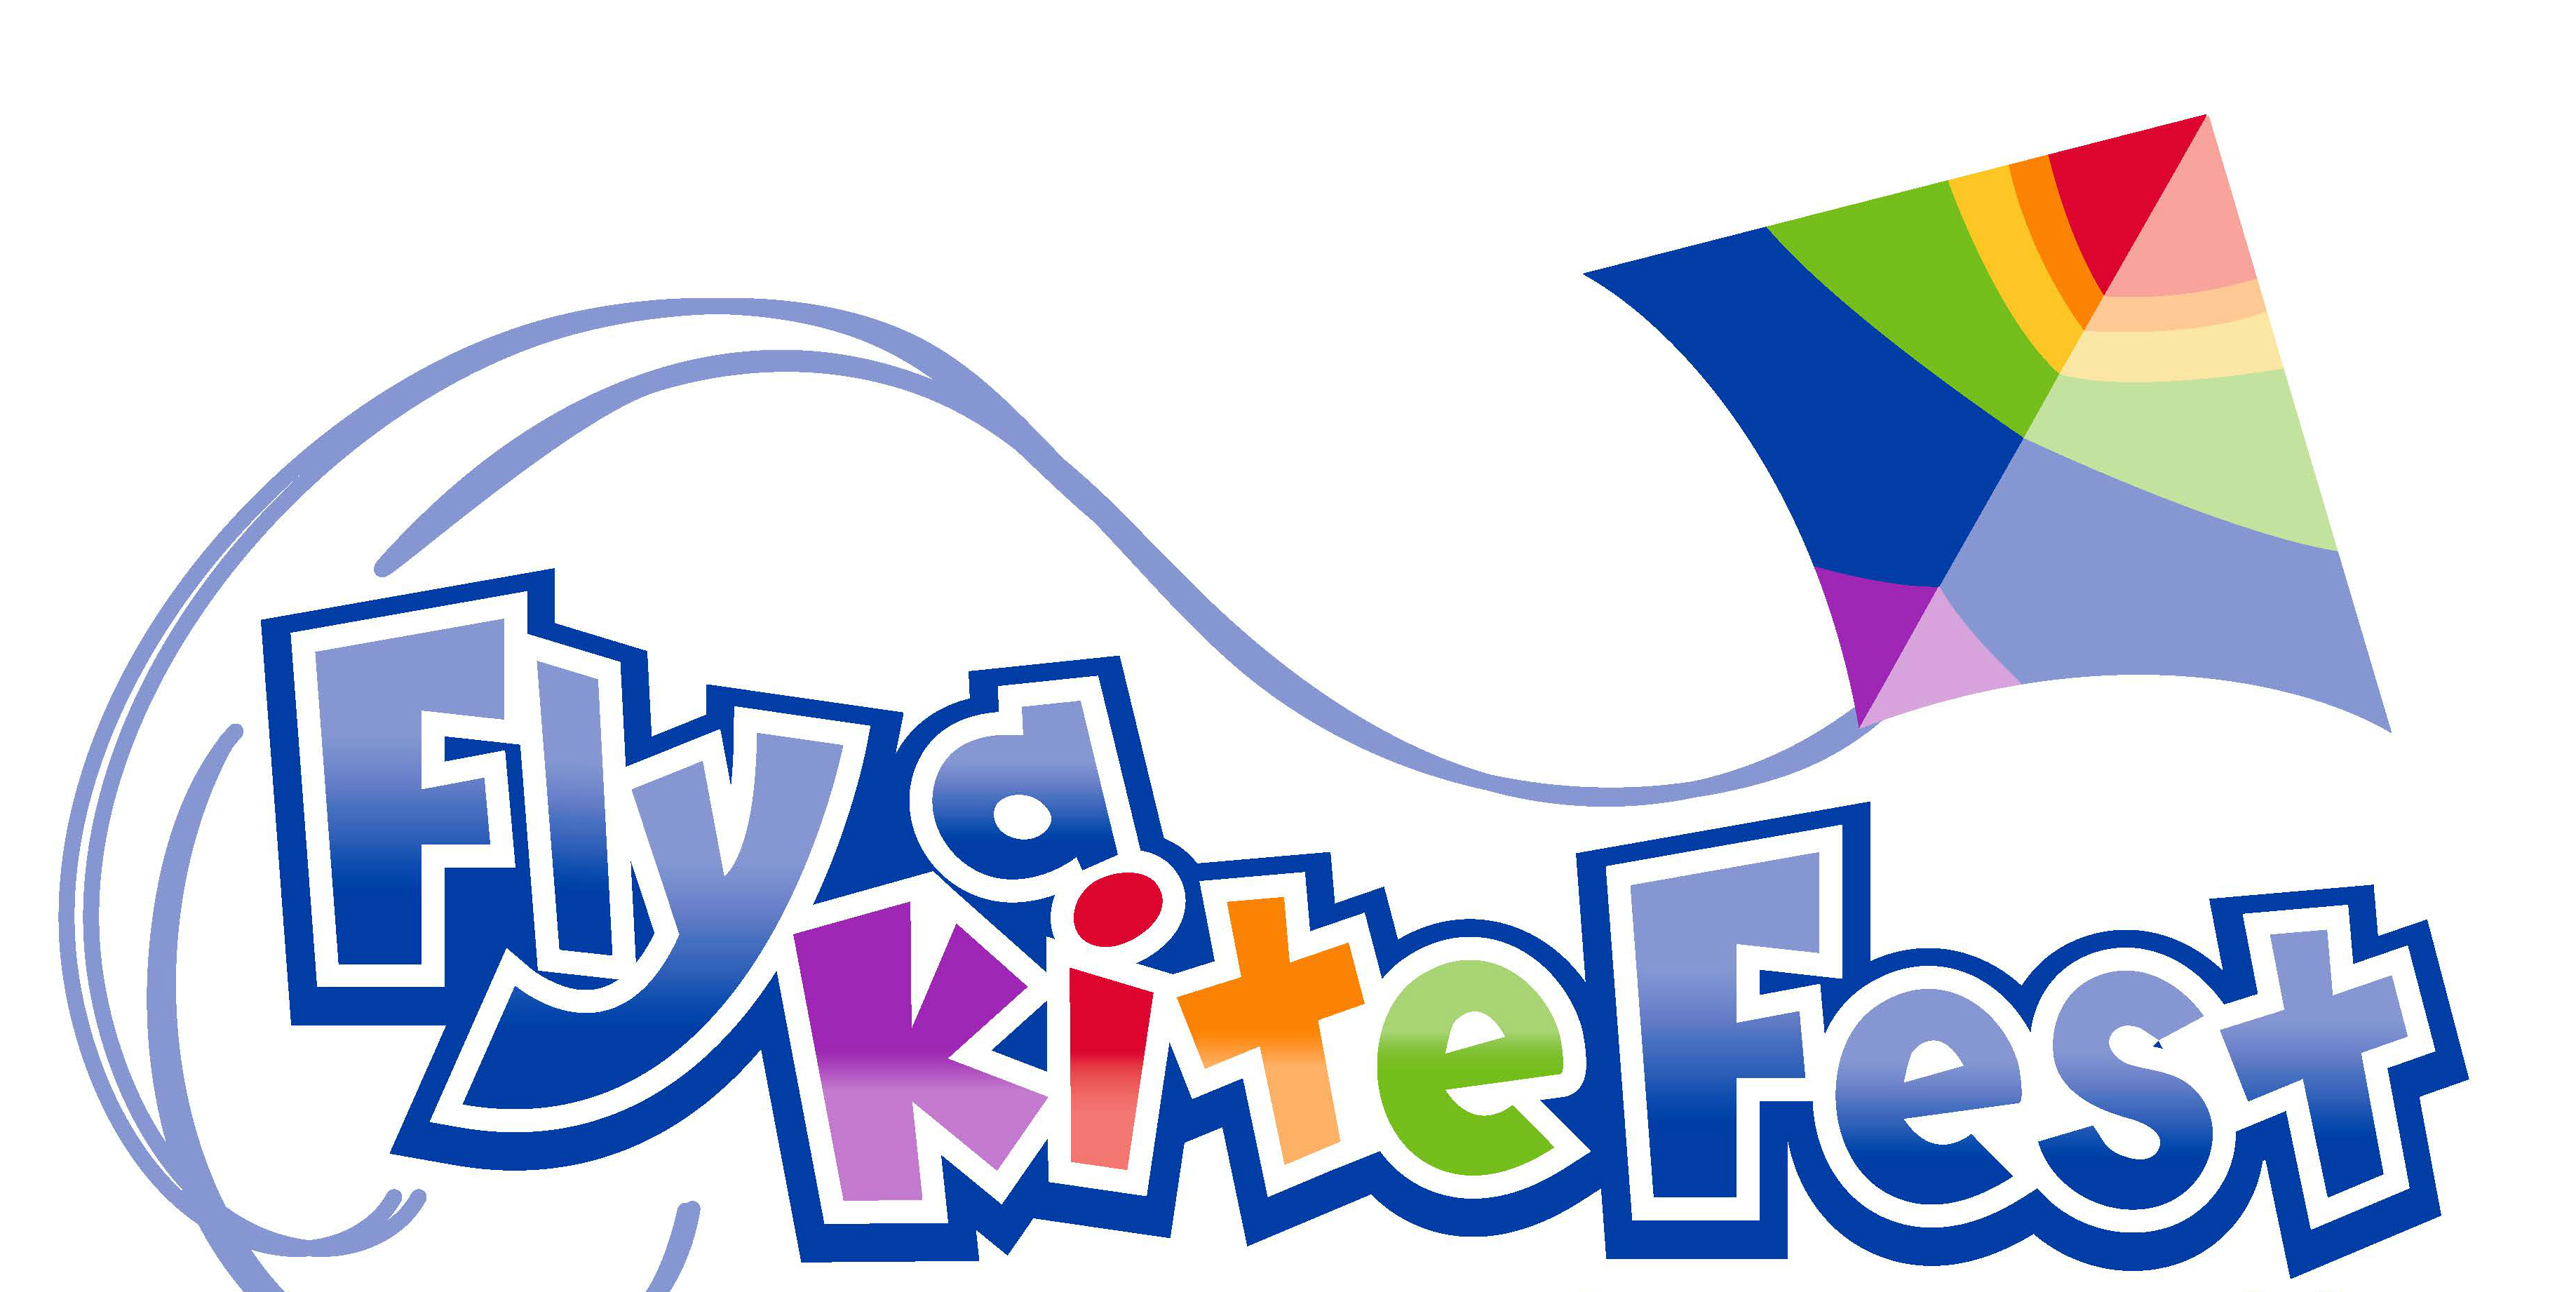 fly a kite fest family u0026 childcare resources of northeast wisconsin